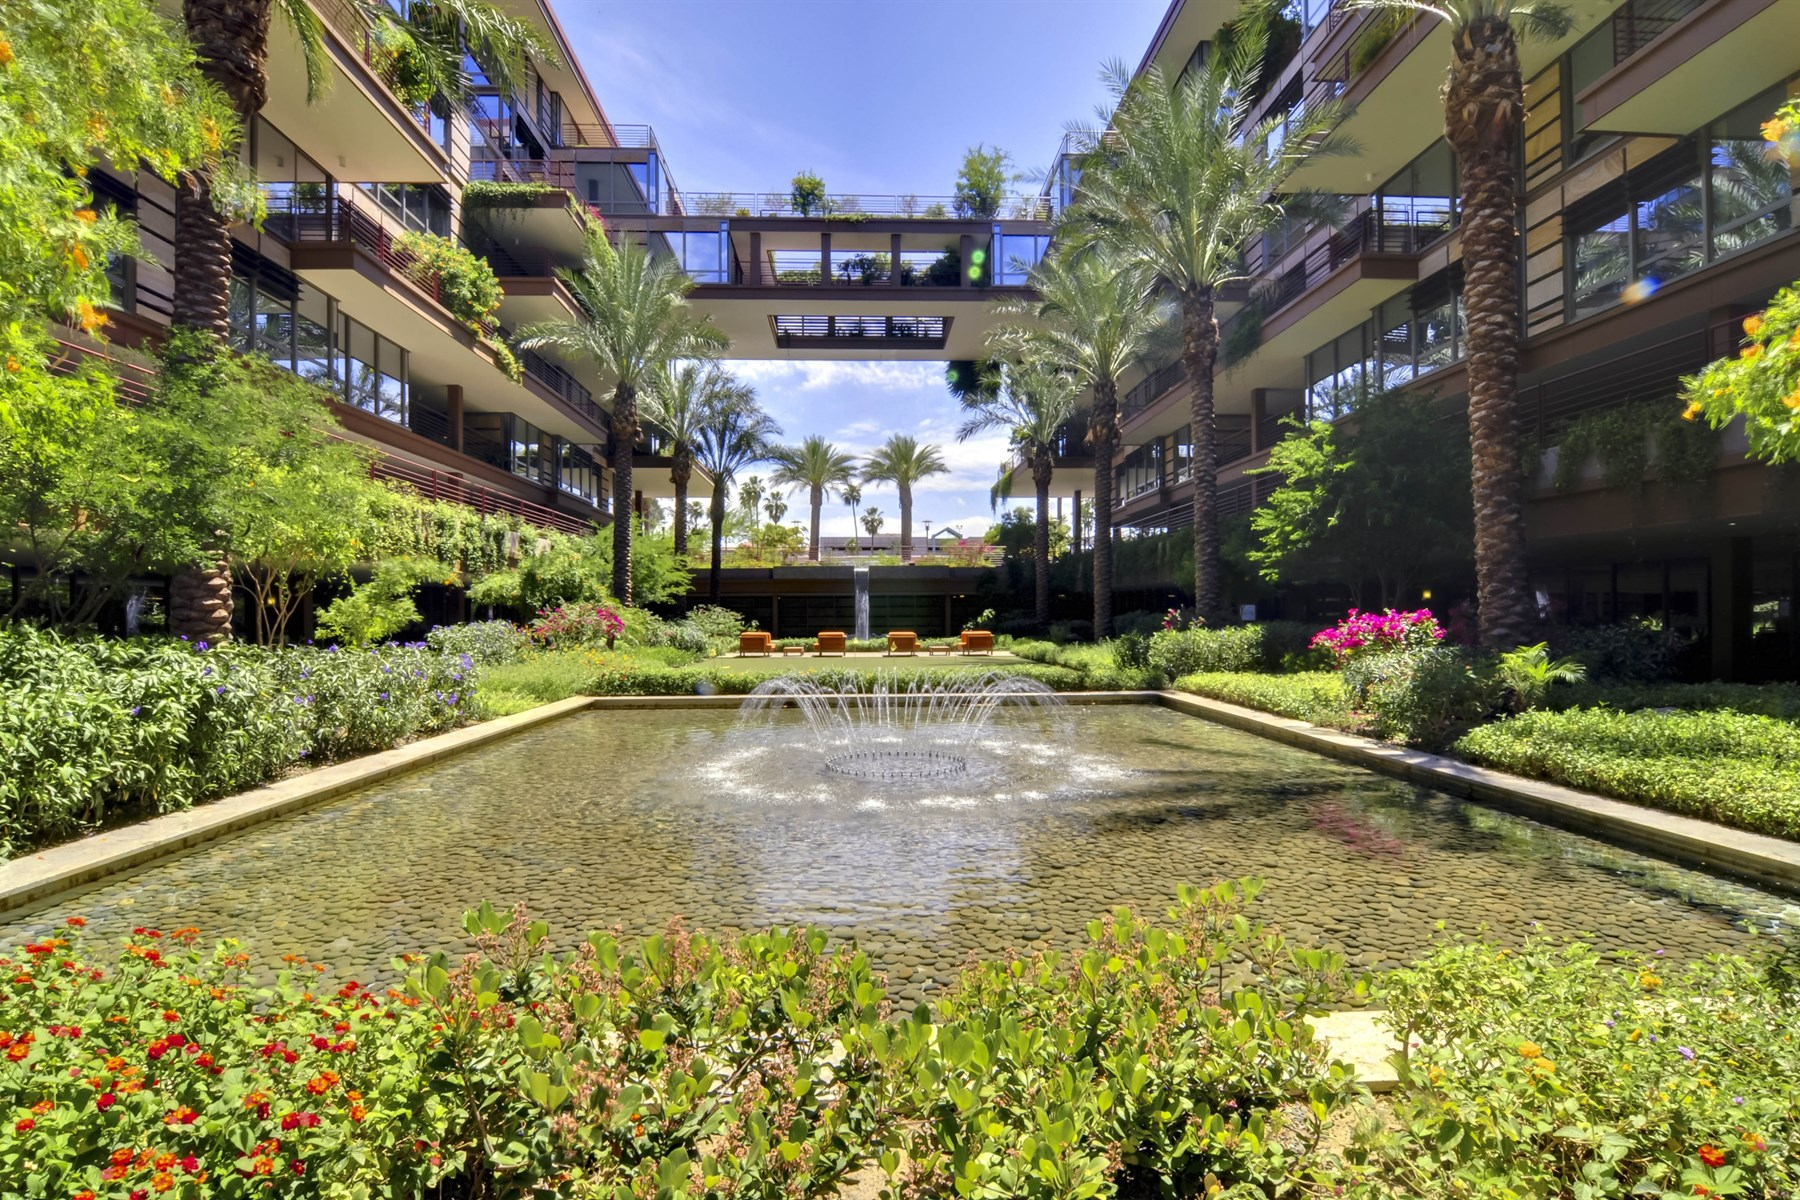 Apartment for Sale at Stunning Luxurious Four Bedroom Unit At Optima Camelview 7167 E Rancho Vista Drive #4014 Scottsdale, Arizona 85251 United States